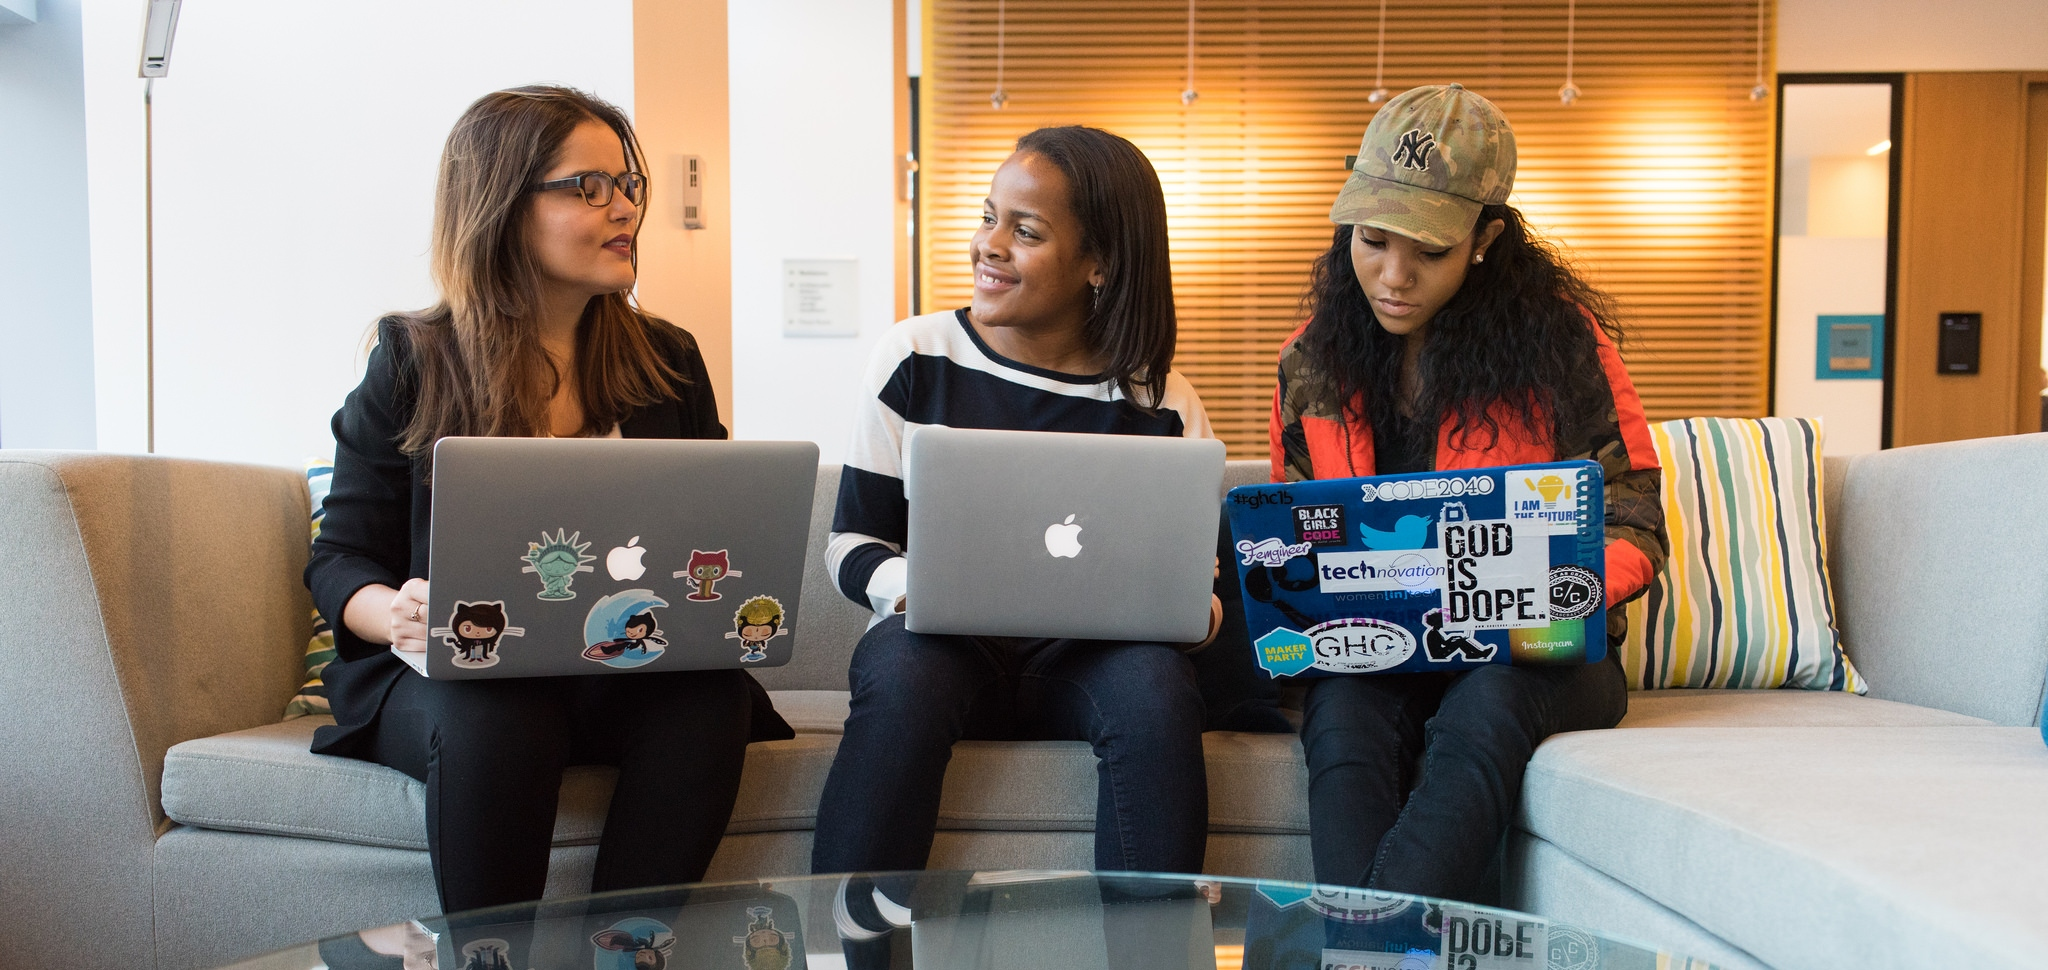 Three young women sitting on a couch with laptops in hand.